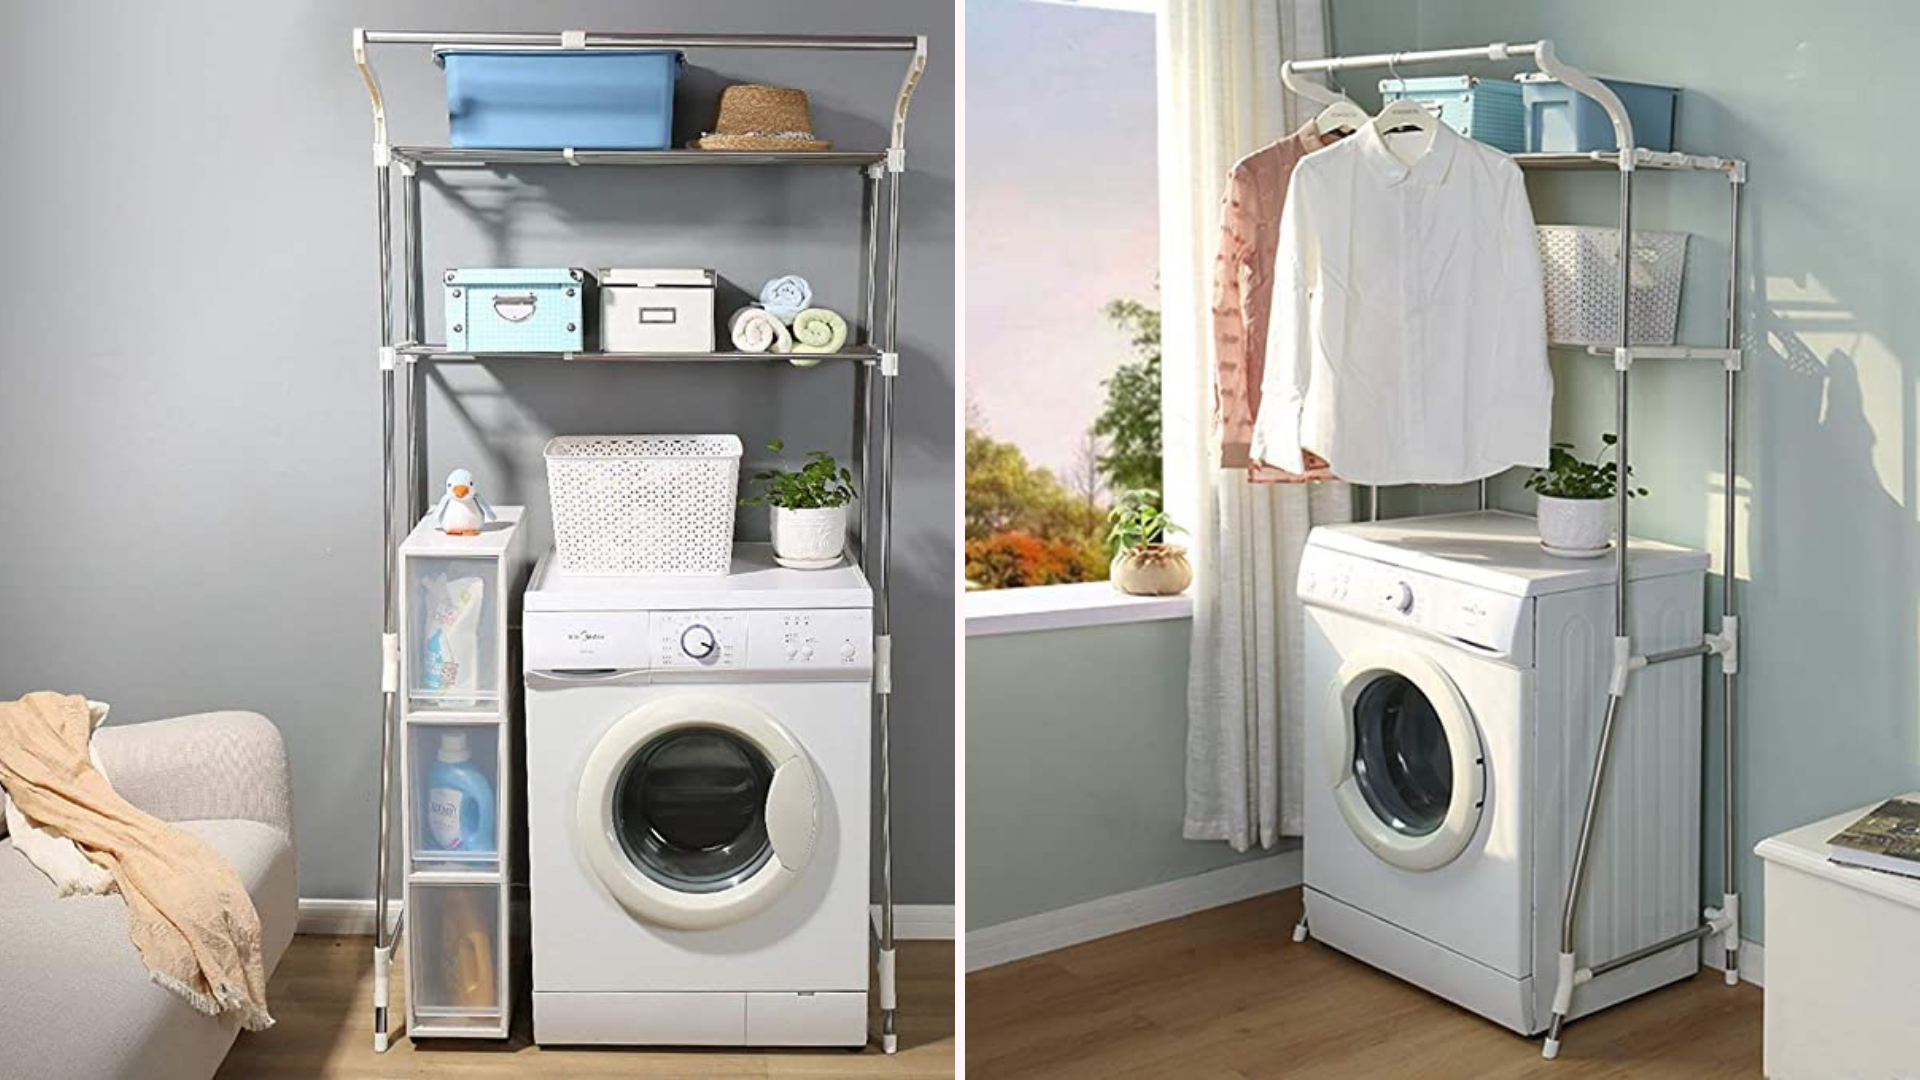 washing machine with storage rack over it holding supplies